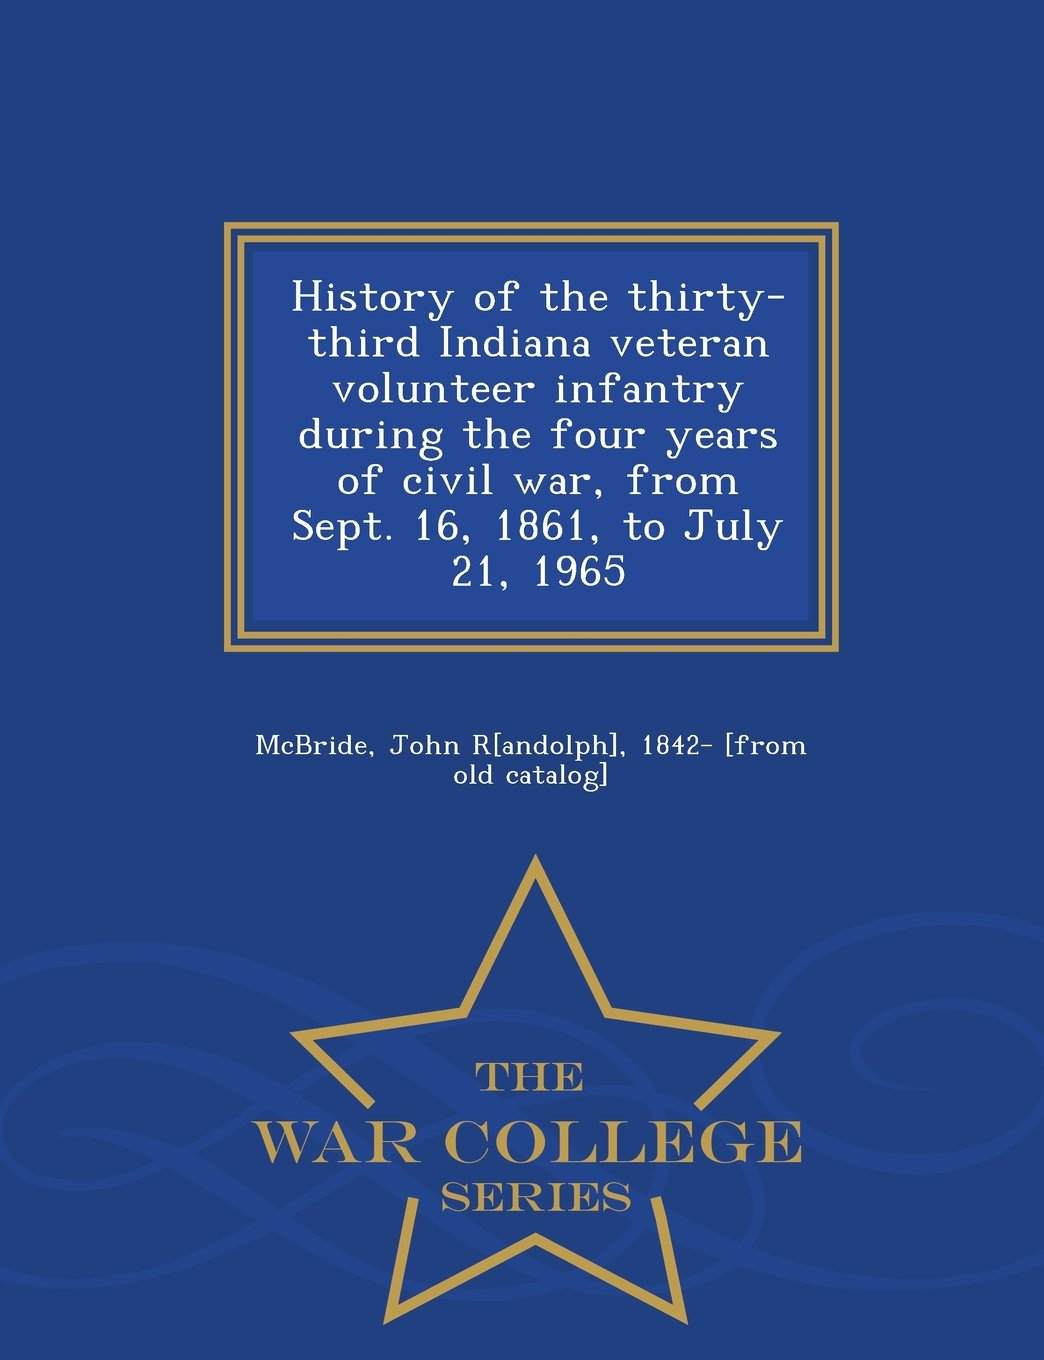 History of the thirty-third Indiana veteran volunteer infantry during the four years of civil war, from Sept. 16, 1861, to July 21, 1965  - War College Series ebook